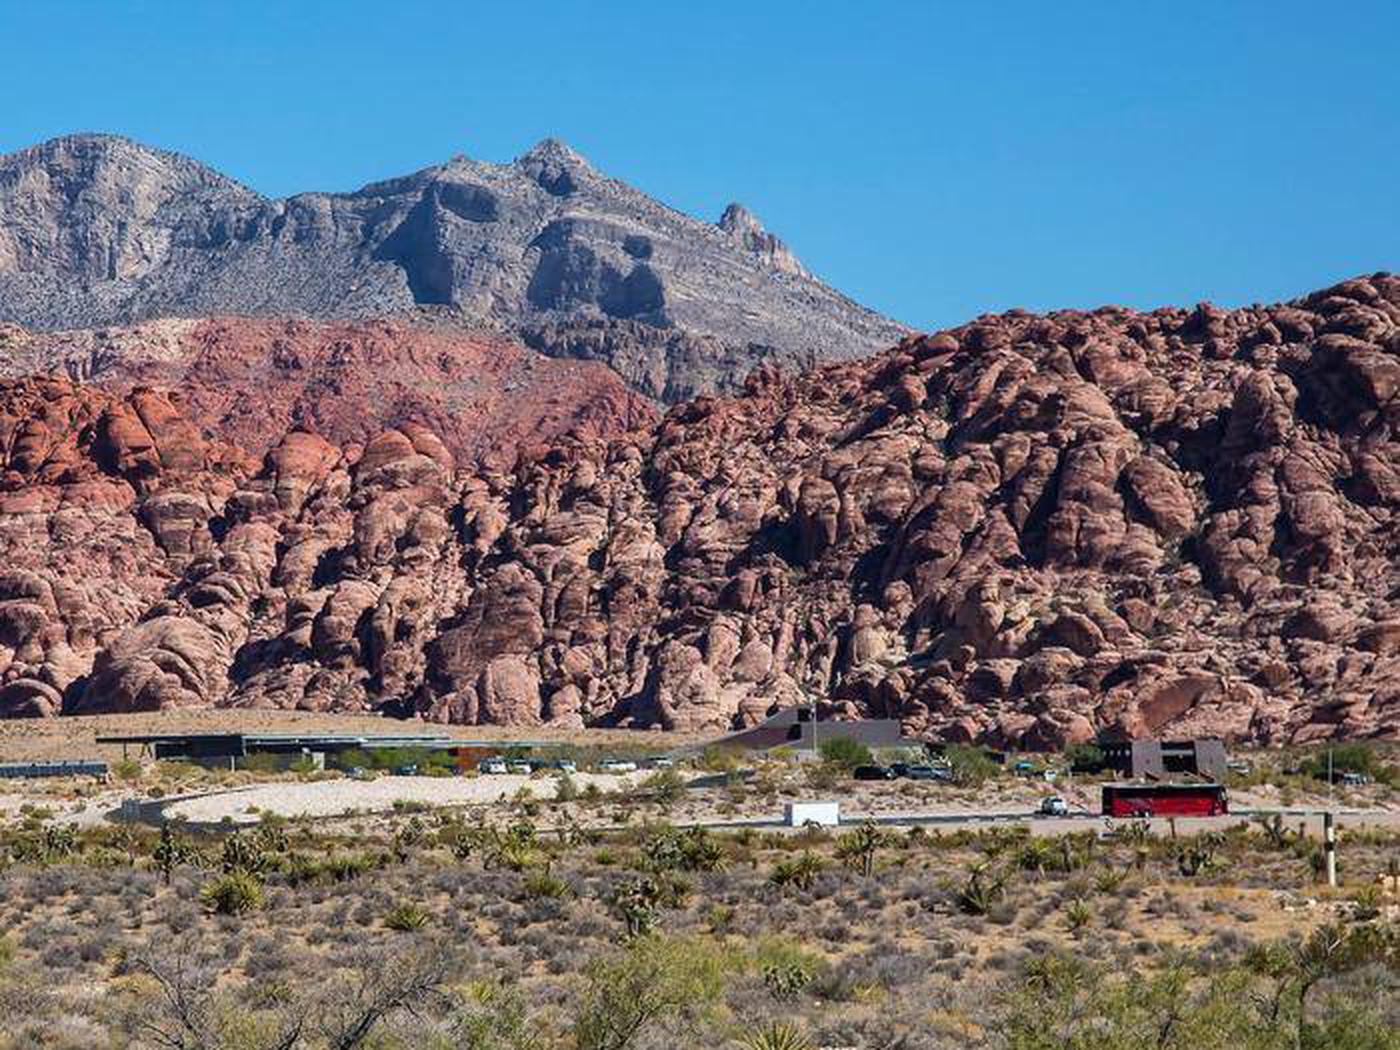 Red Rock Canyon National Conservation Area Visitor Center. Red Rock Canyon's Visitor Center